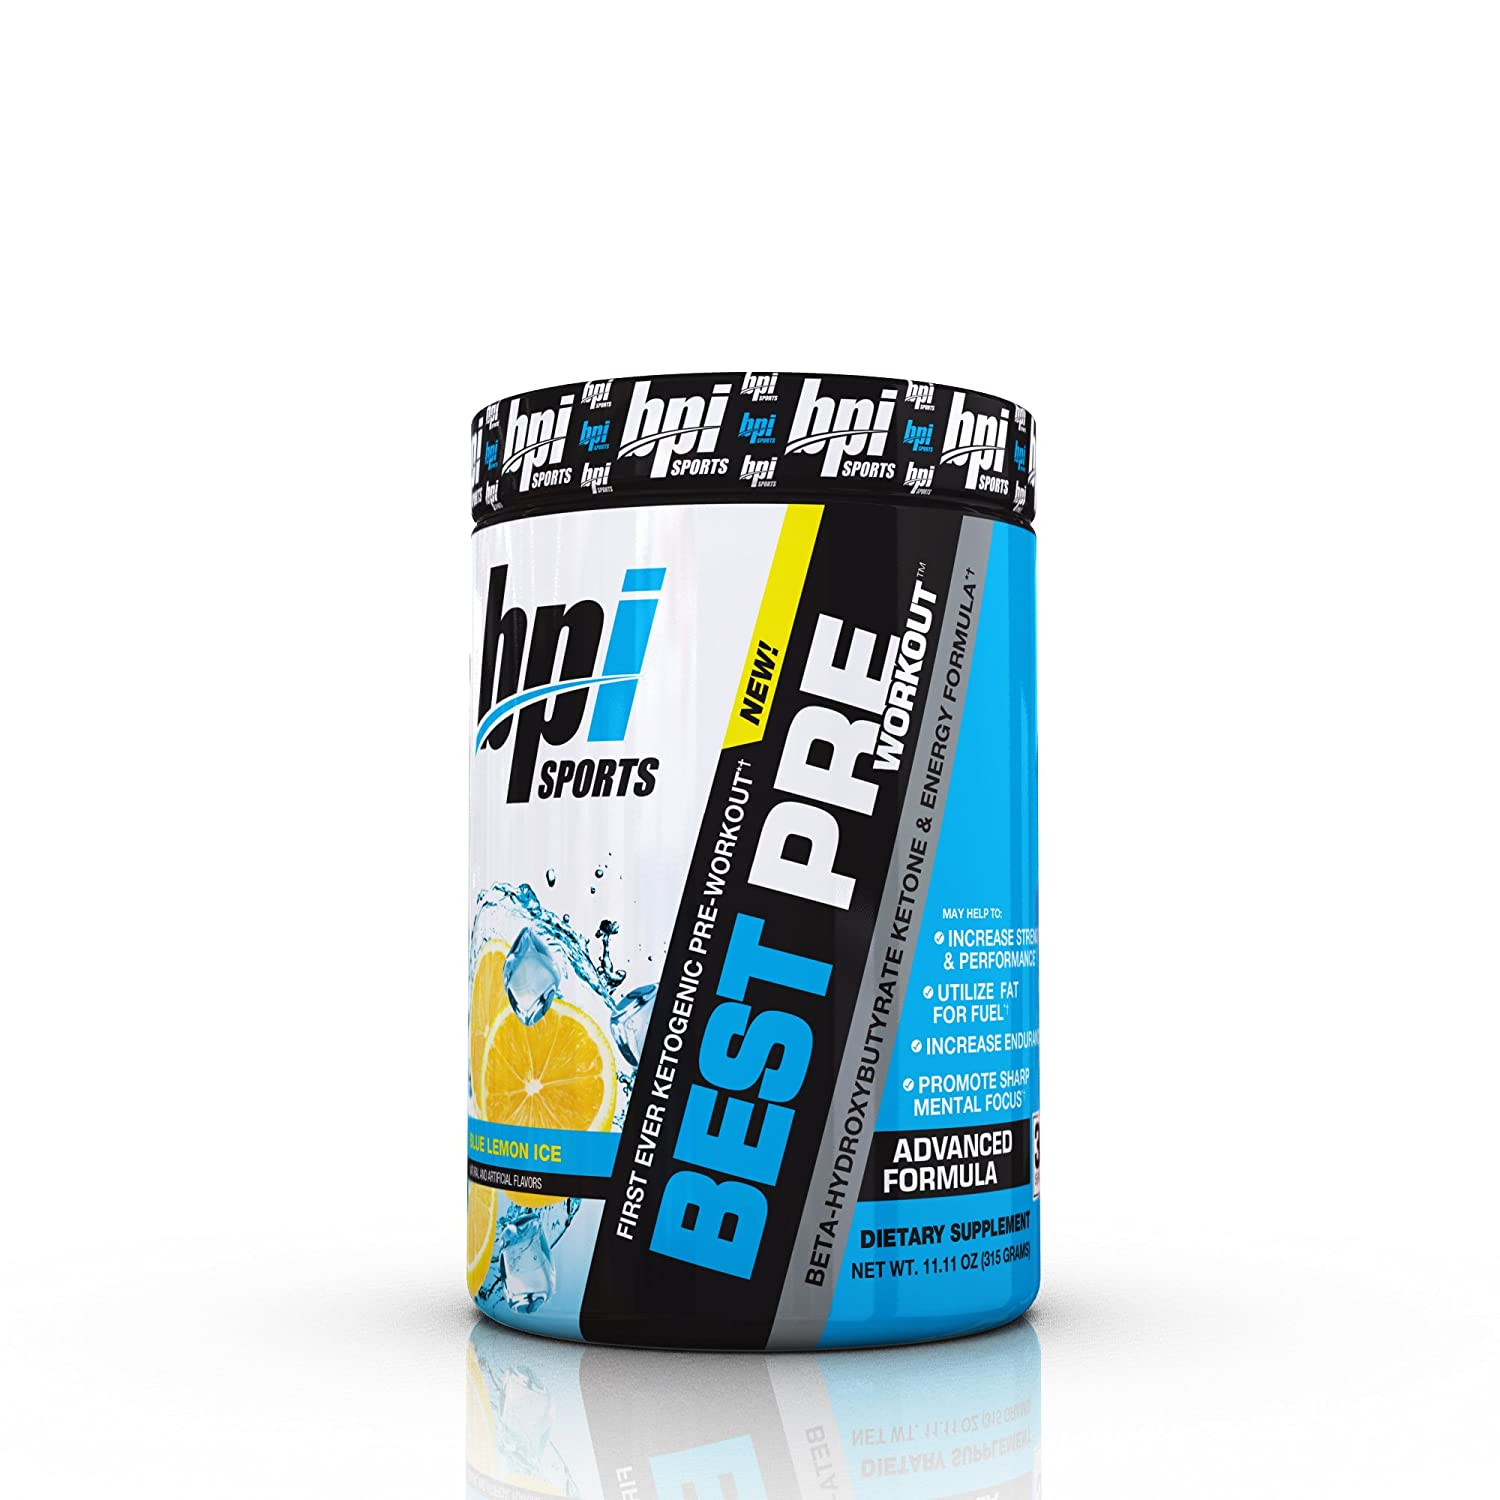 Gen x labs sports amp fitness performance kit 11 week program 4 - Amazon Com Bpi Sports First Ever Ketogenic Pre Workout Supplement Blue Lemon Ice 11 11 Ounce Health Personal Care